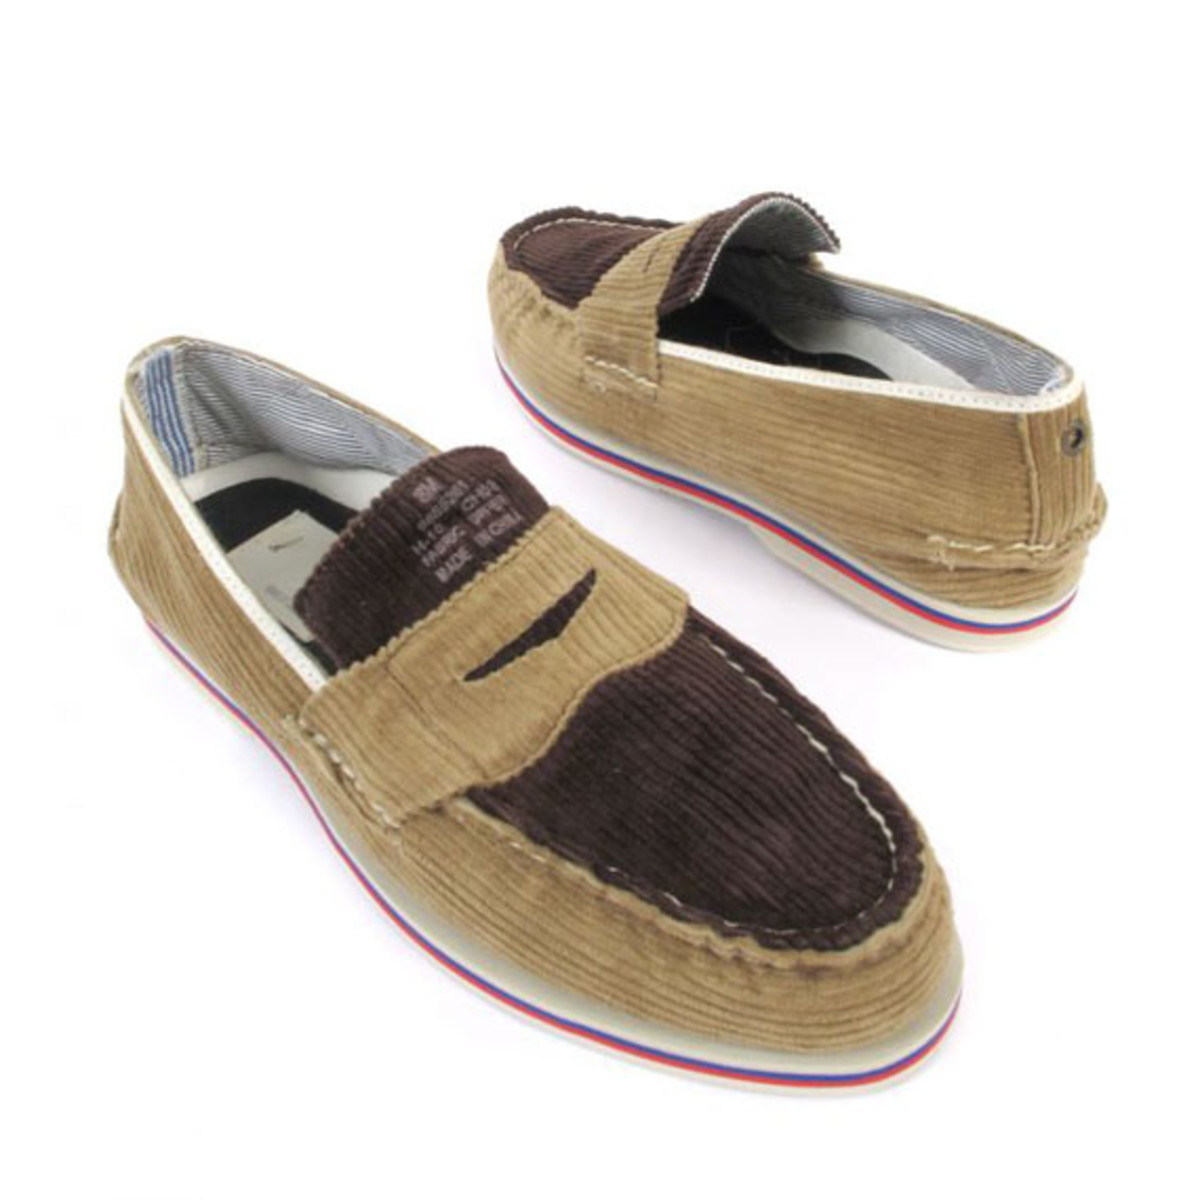 sperry-topsider-band-of-outsider-fw10-6